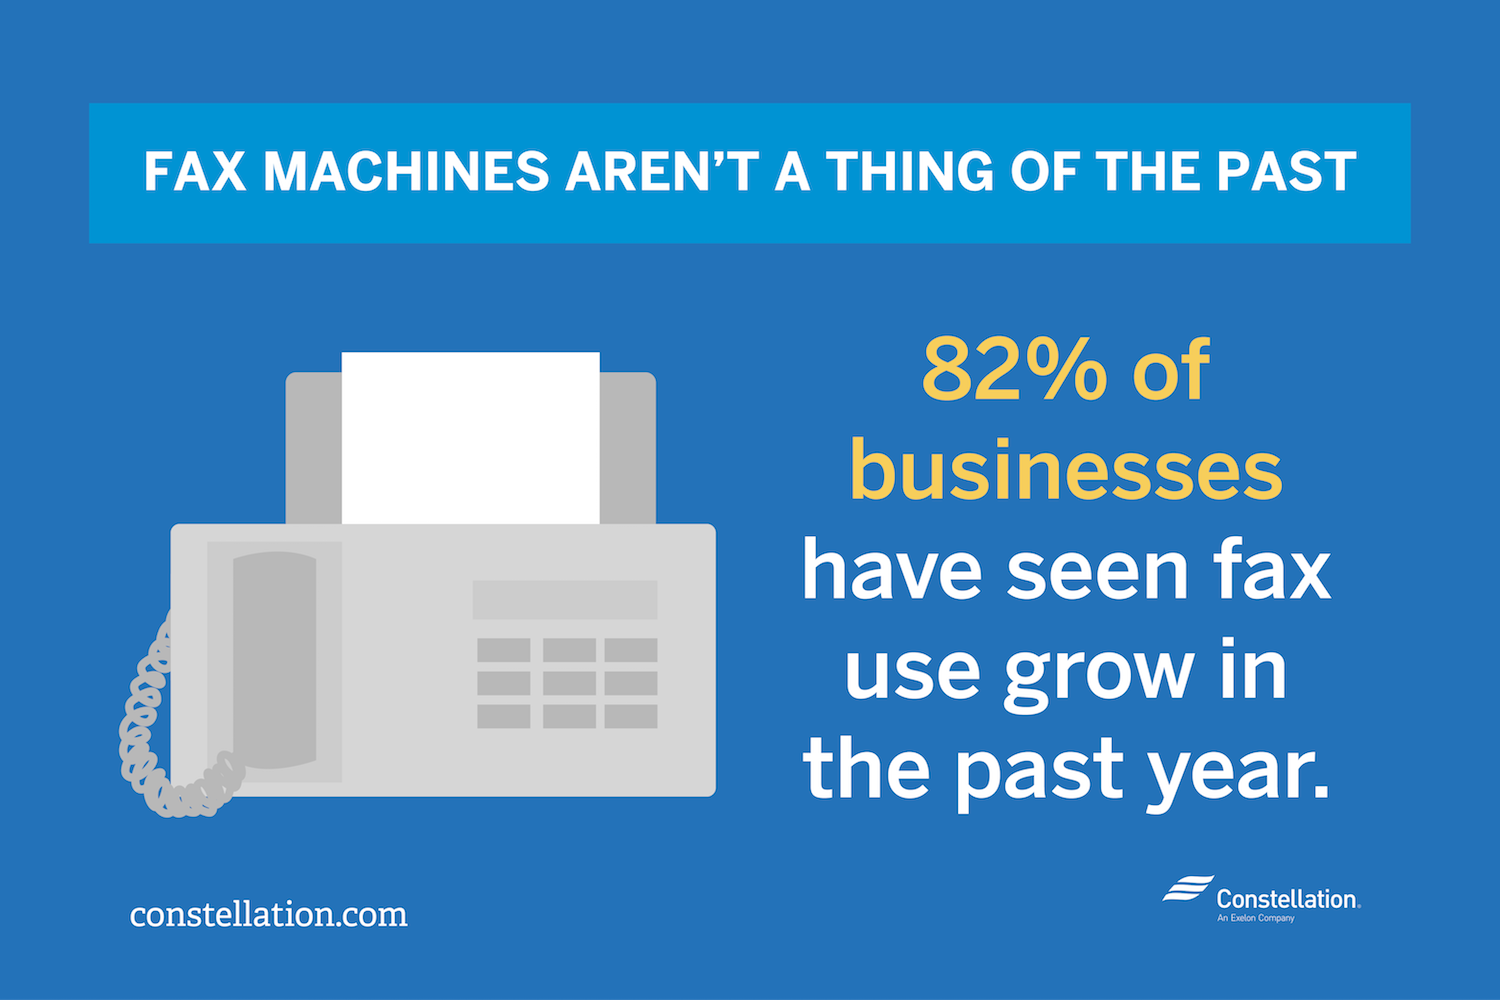 Small businesses have seen fax machine use grow